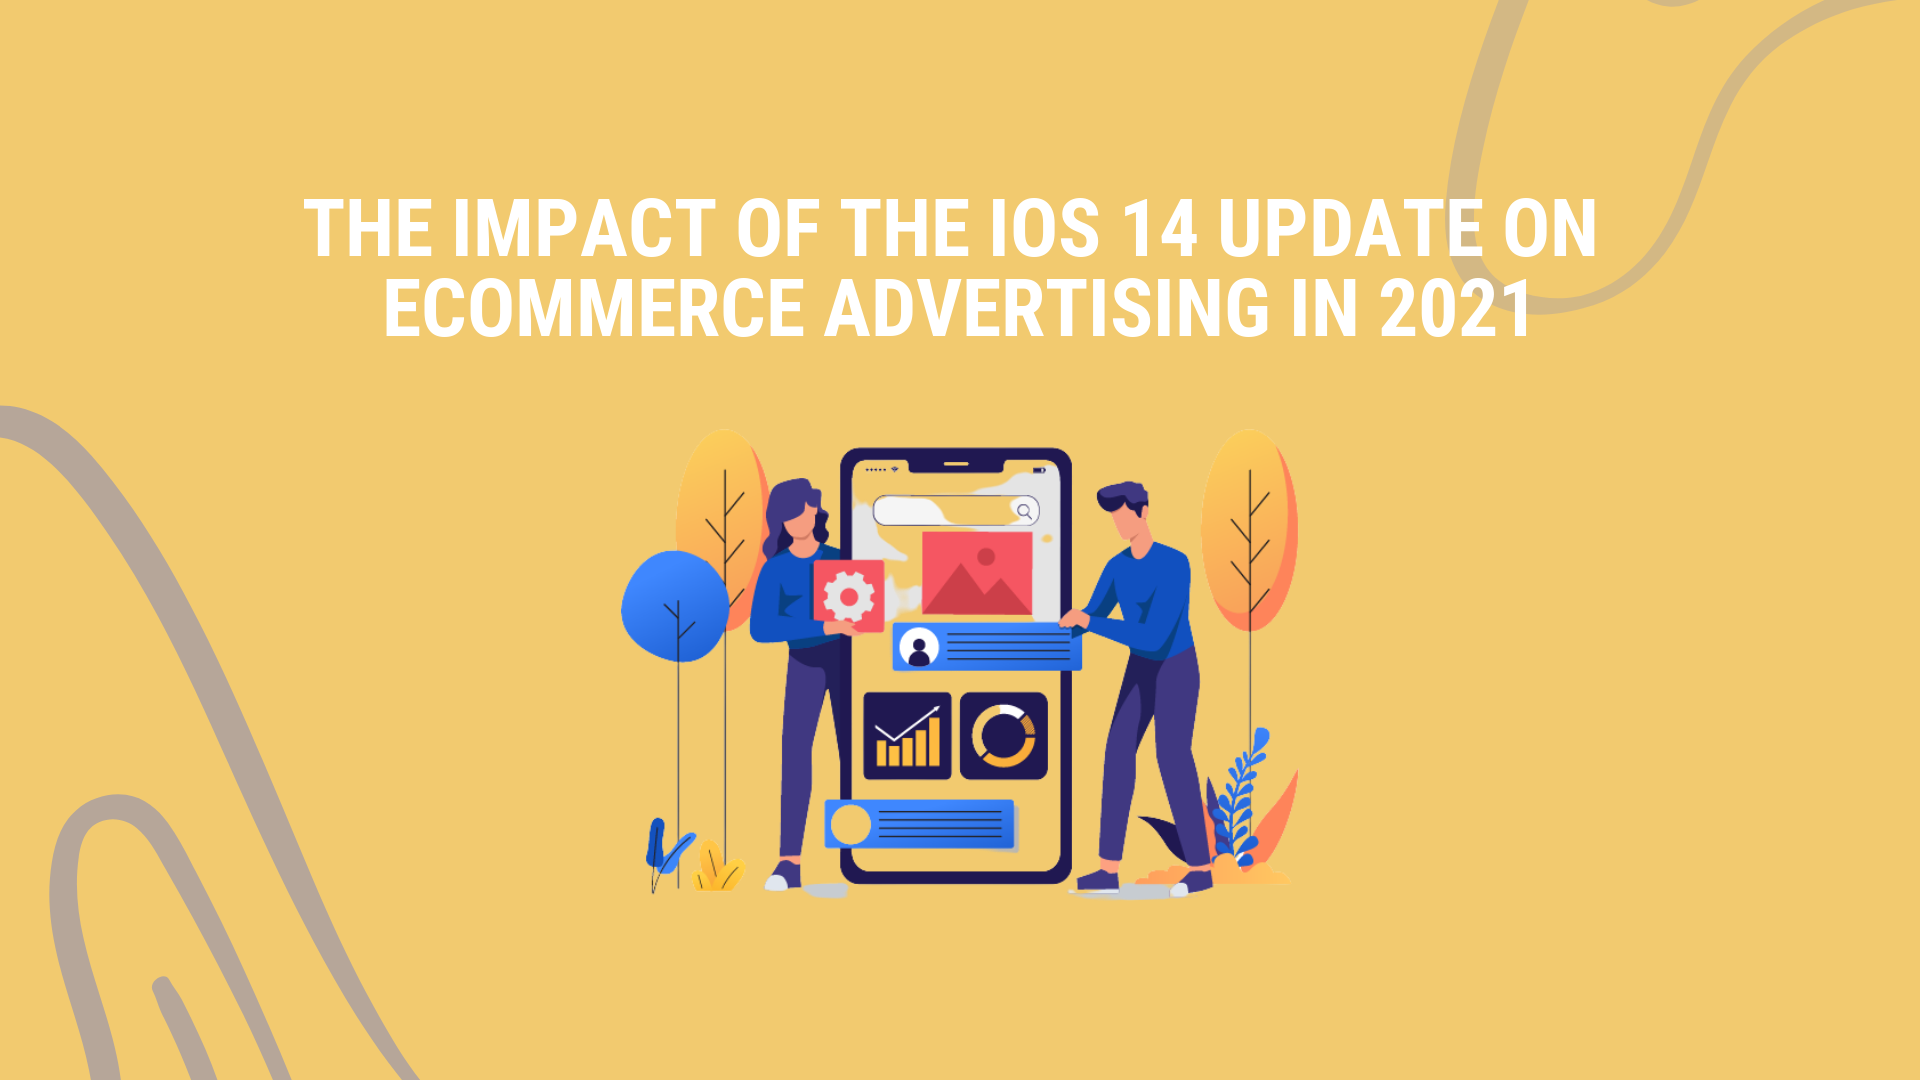 THE IOS 14 UPDATE ON ECOMMERCE ADVERTISING IN 2021